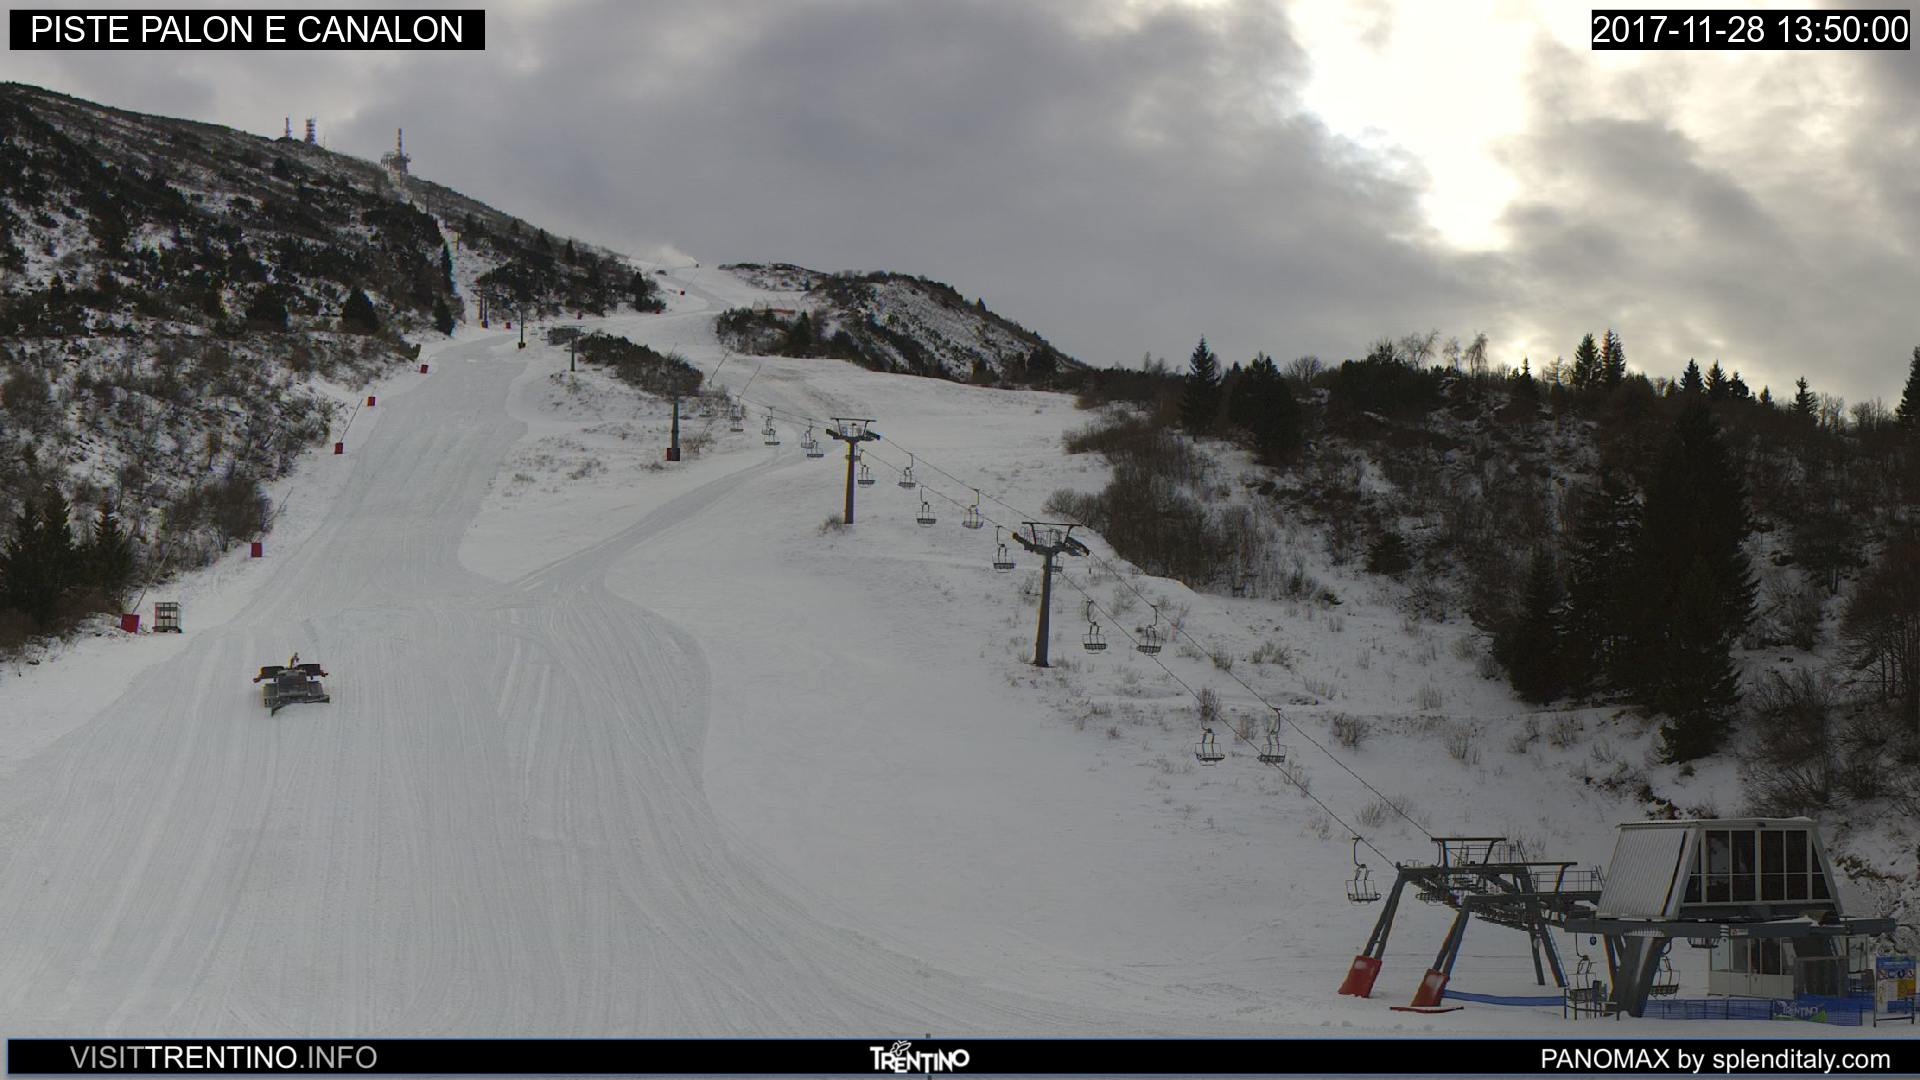 Webcam Bondone - Pista Palon